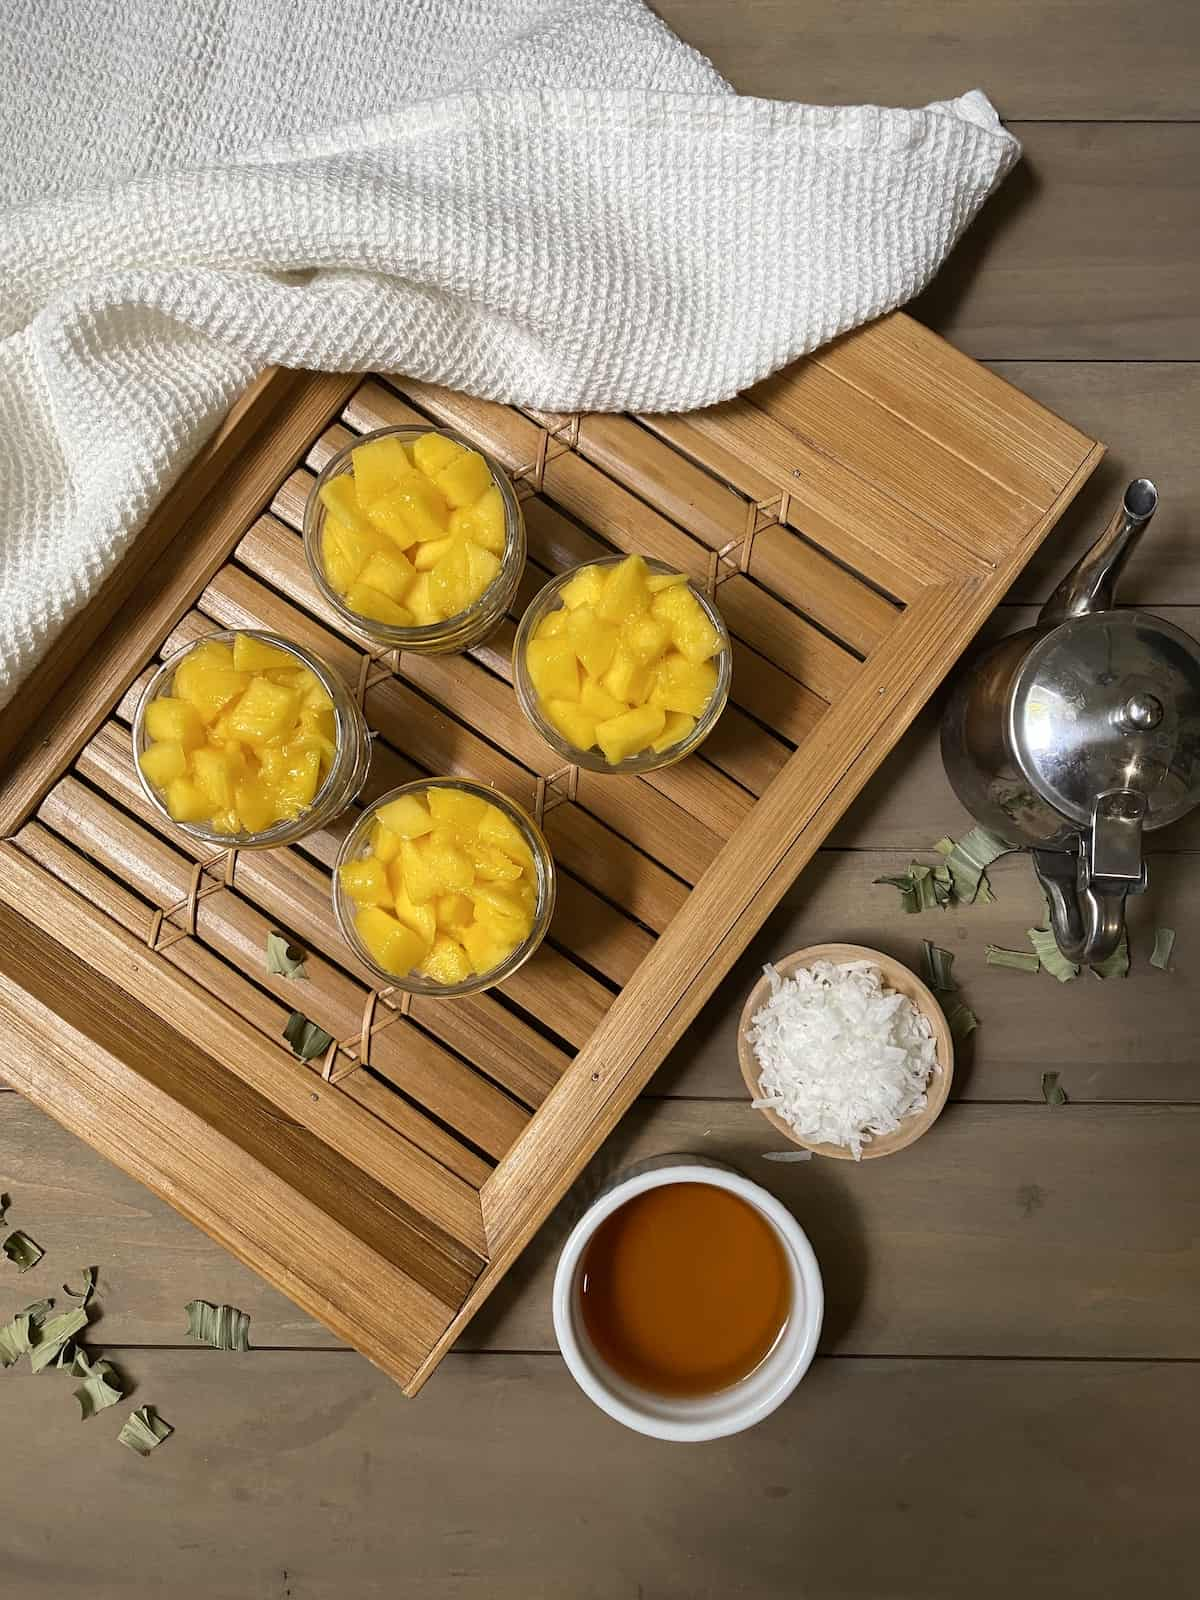 Mango on a bamboo board with a white cloth and other ingredients.